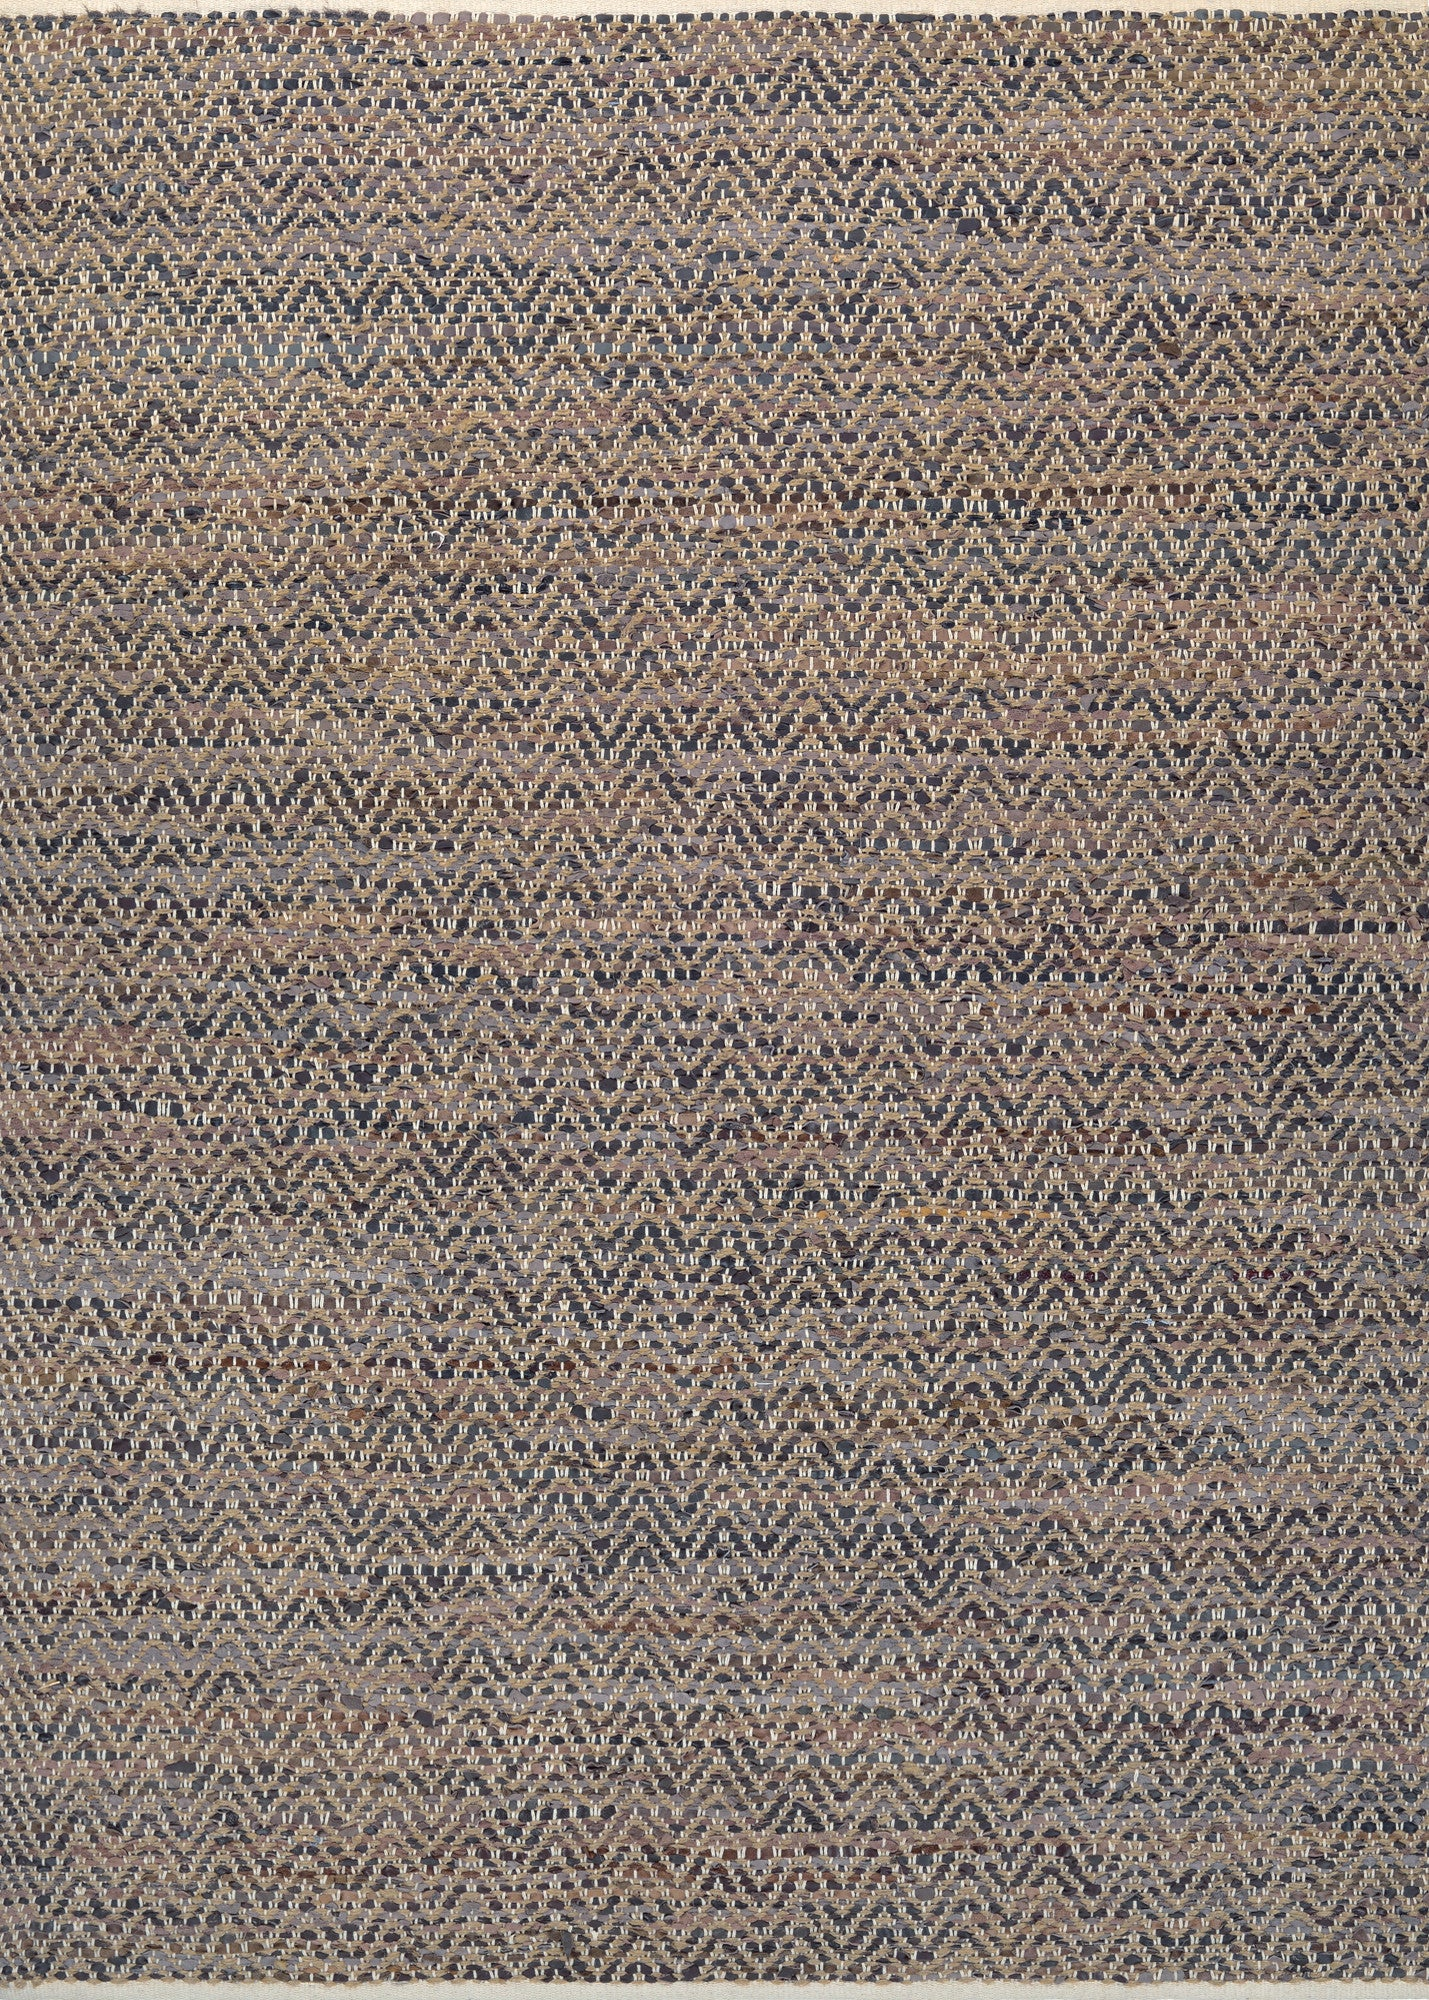 Couristan Nature's Elements Terrain Natural/Brown/Stone Area Rug